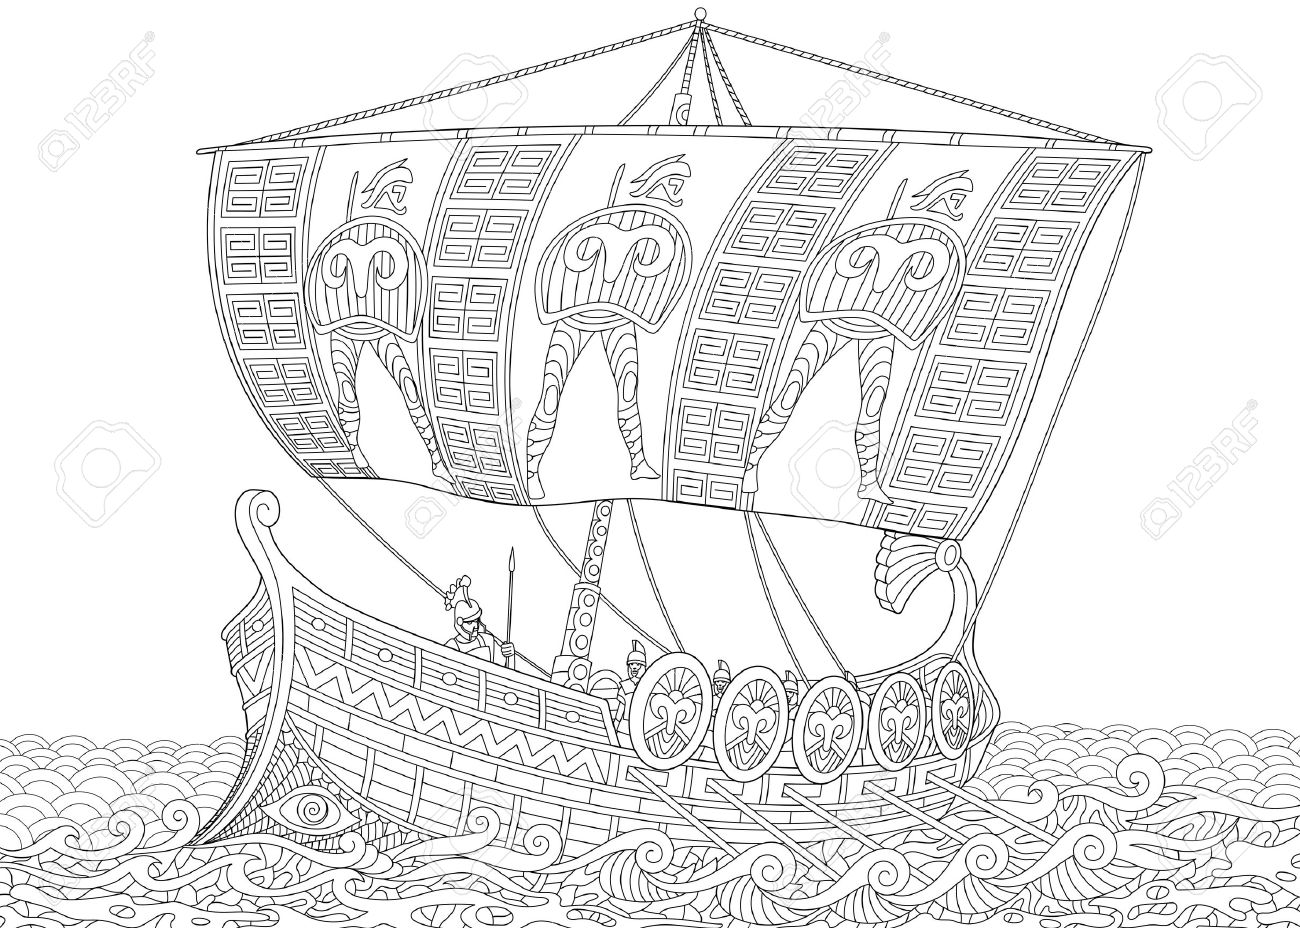 Stylized ancient greek galley (warship) with mast, sail, oars and warriors with spears and shields. Freehand sketch for adult anti stress coloring book page with doodle and zentangle elements. - 67183438